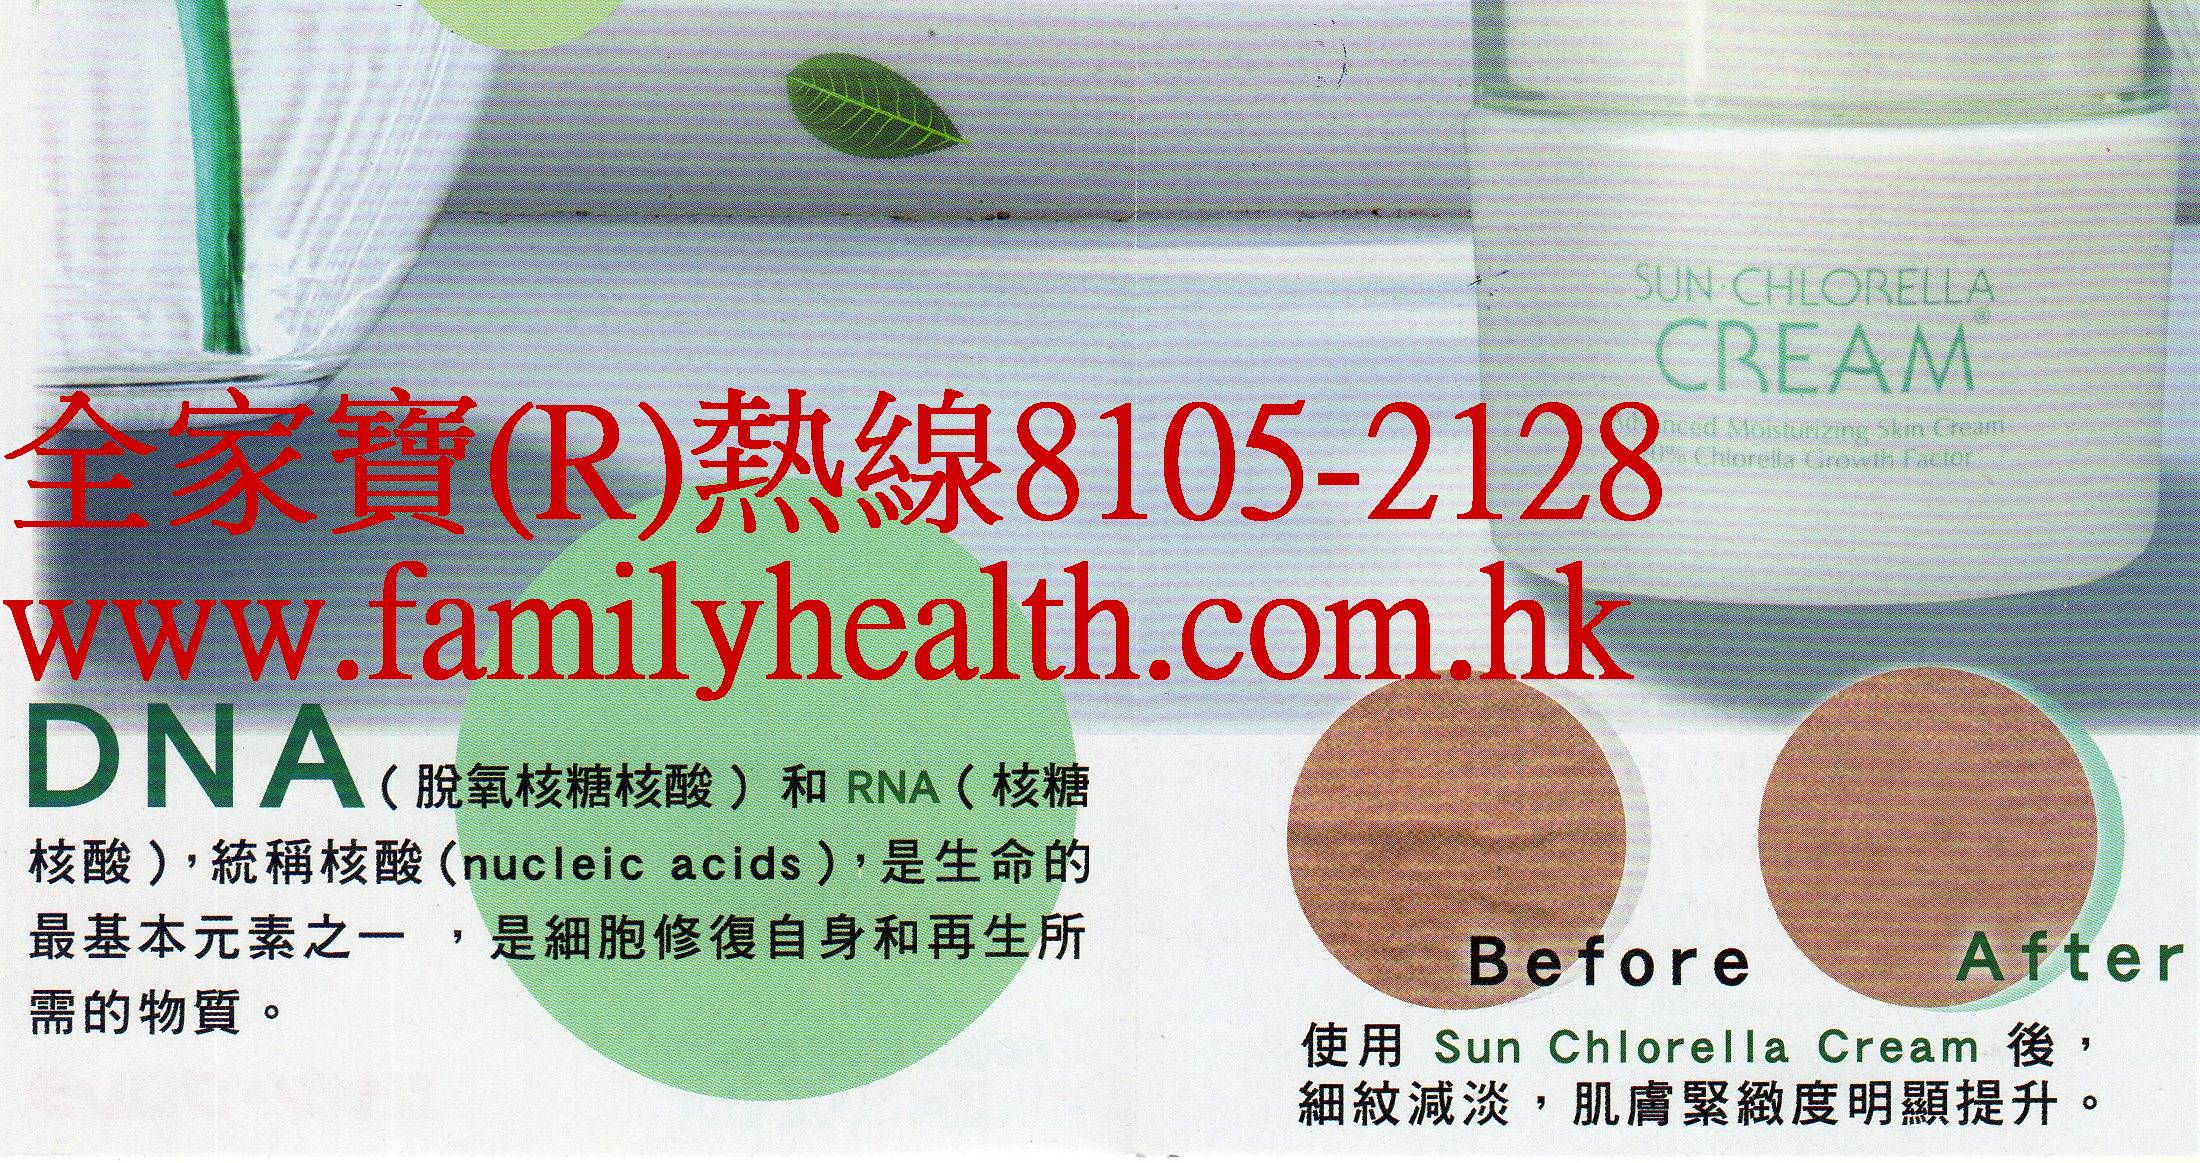 http://www.familyhealth.com.hk/files/full/1033_1.jpg